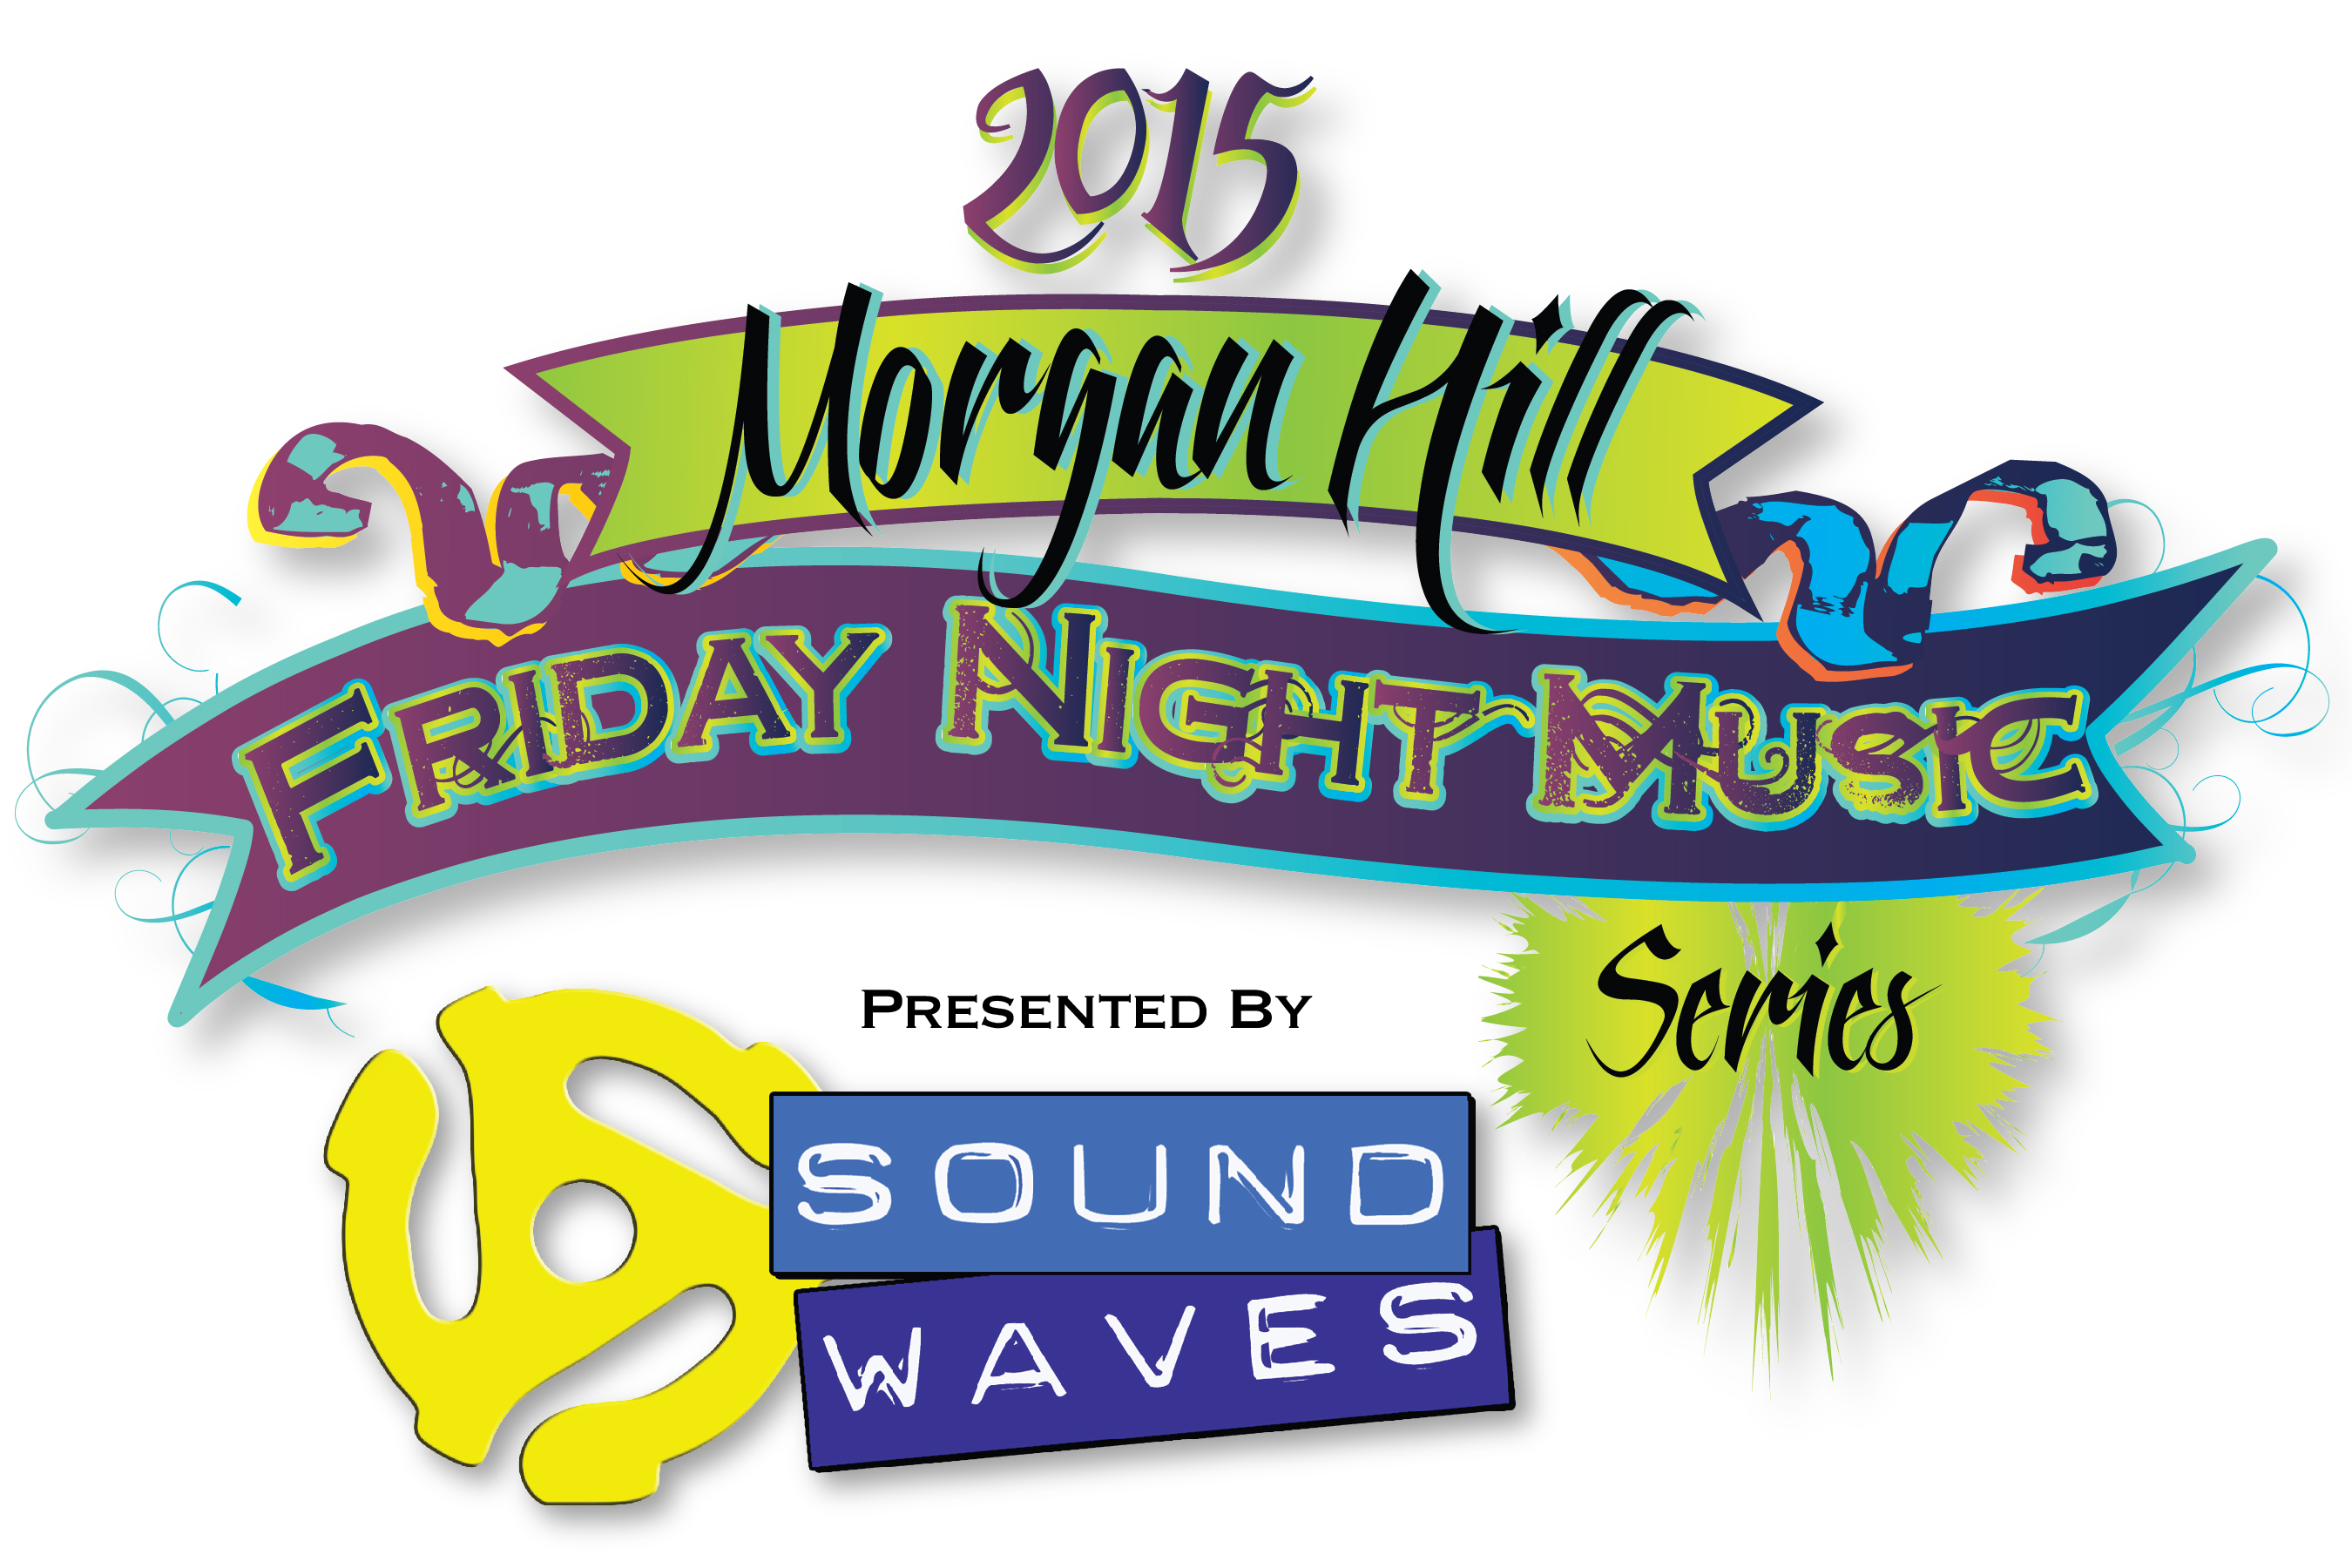 2015 Morgan Hill Friday Night Music Series